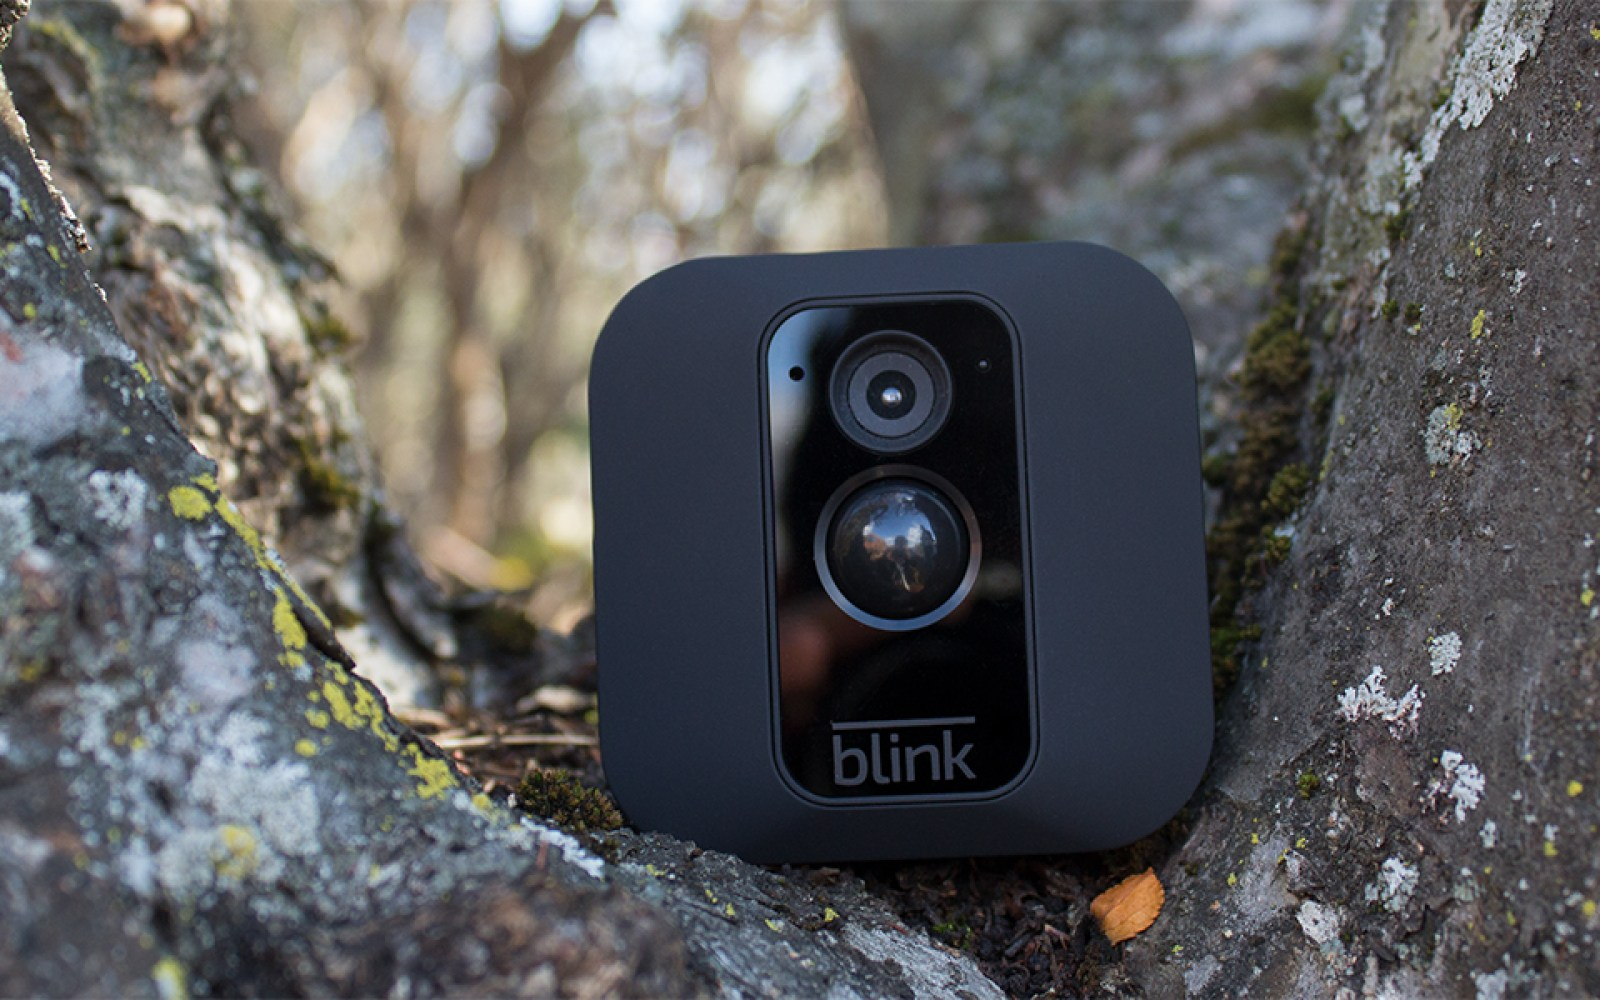 The Blink XT Outdoor Security Camera brings up to two years of battery life and free cloud storage